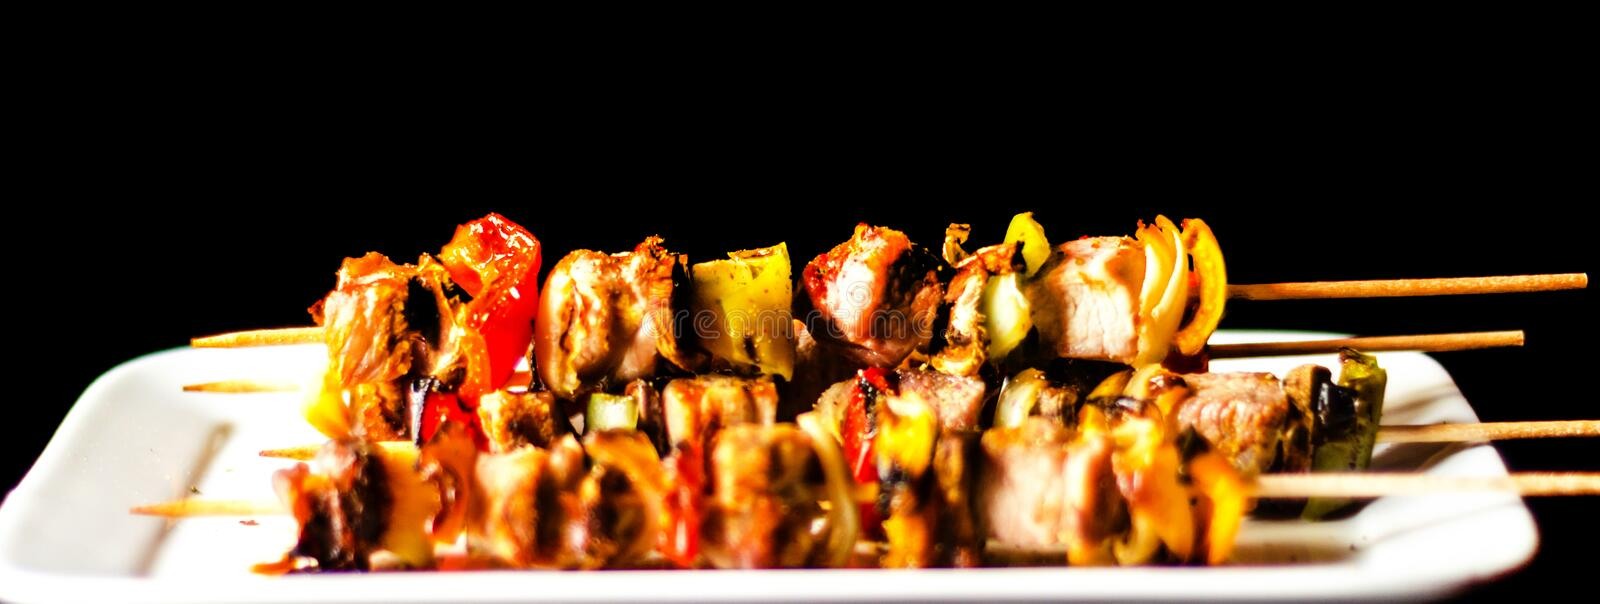 Grilled skewers of meat and vegetables on a wooden board, colorful and tasty dish stock photo